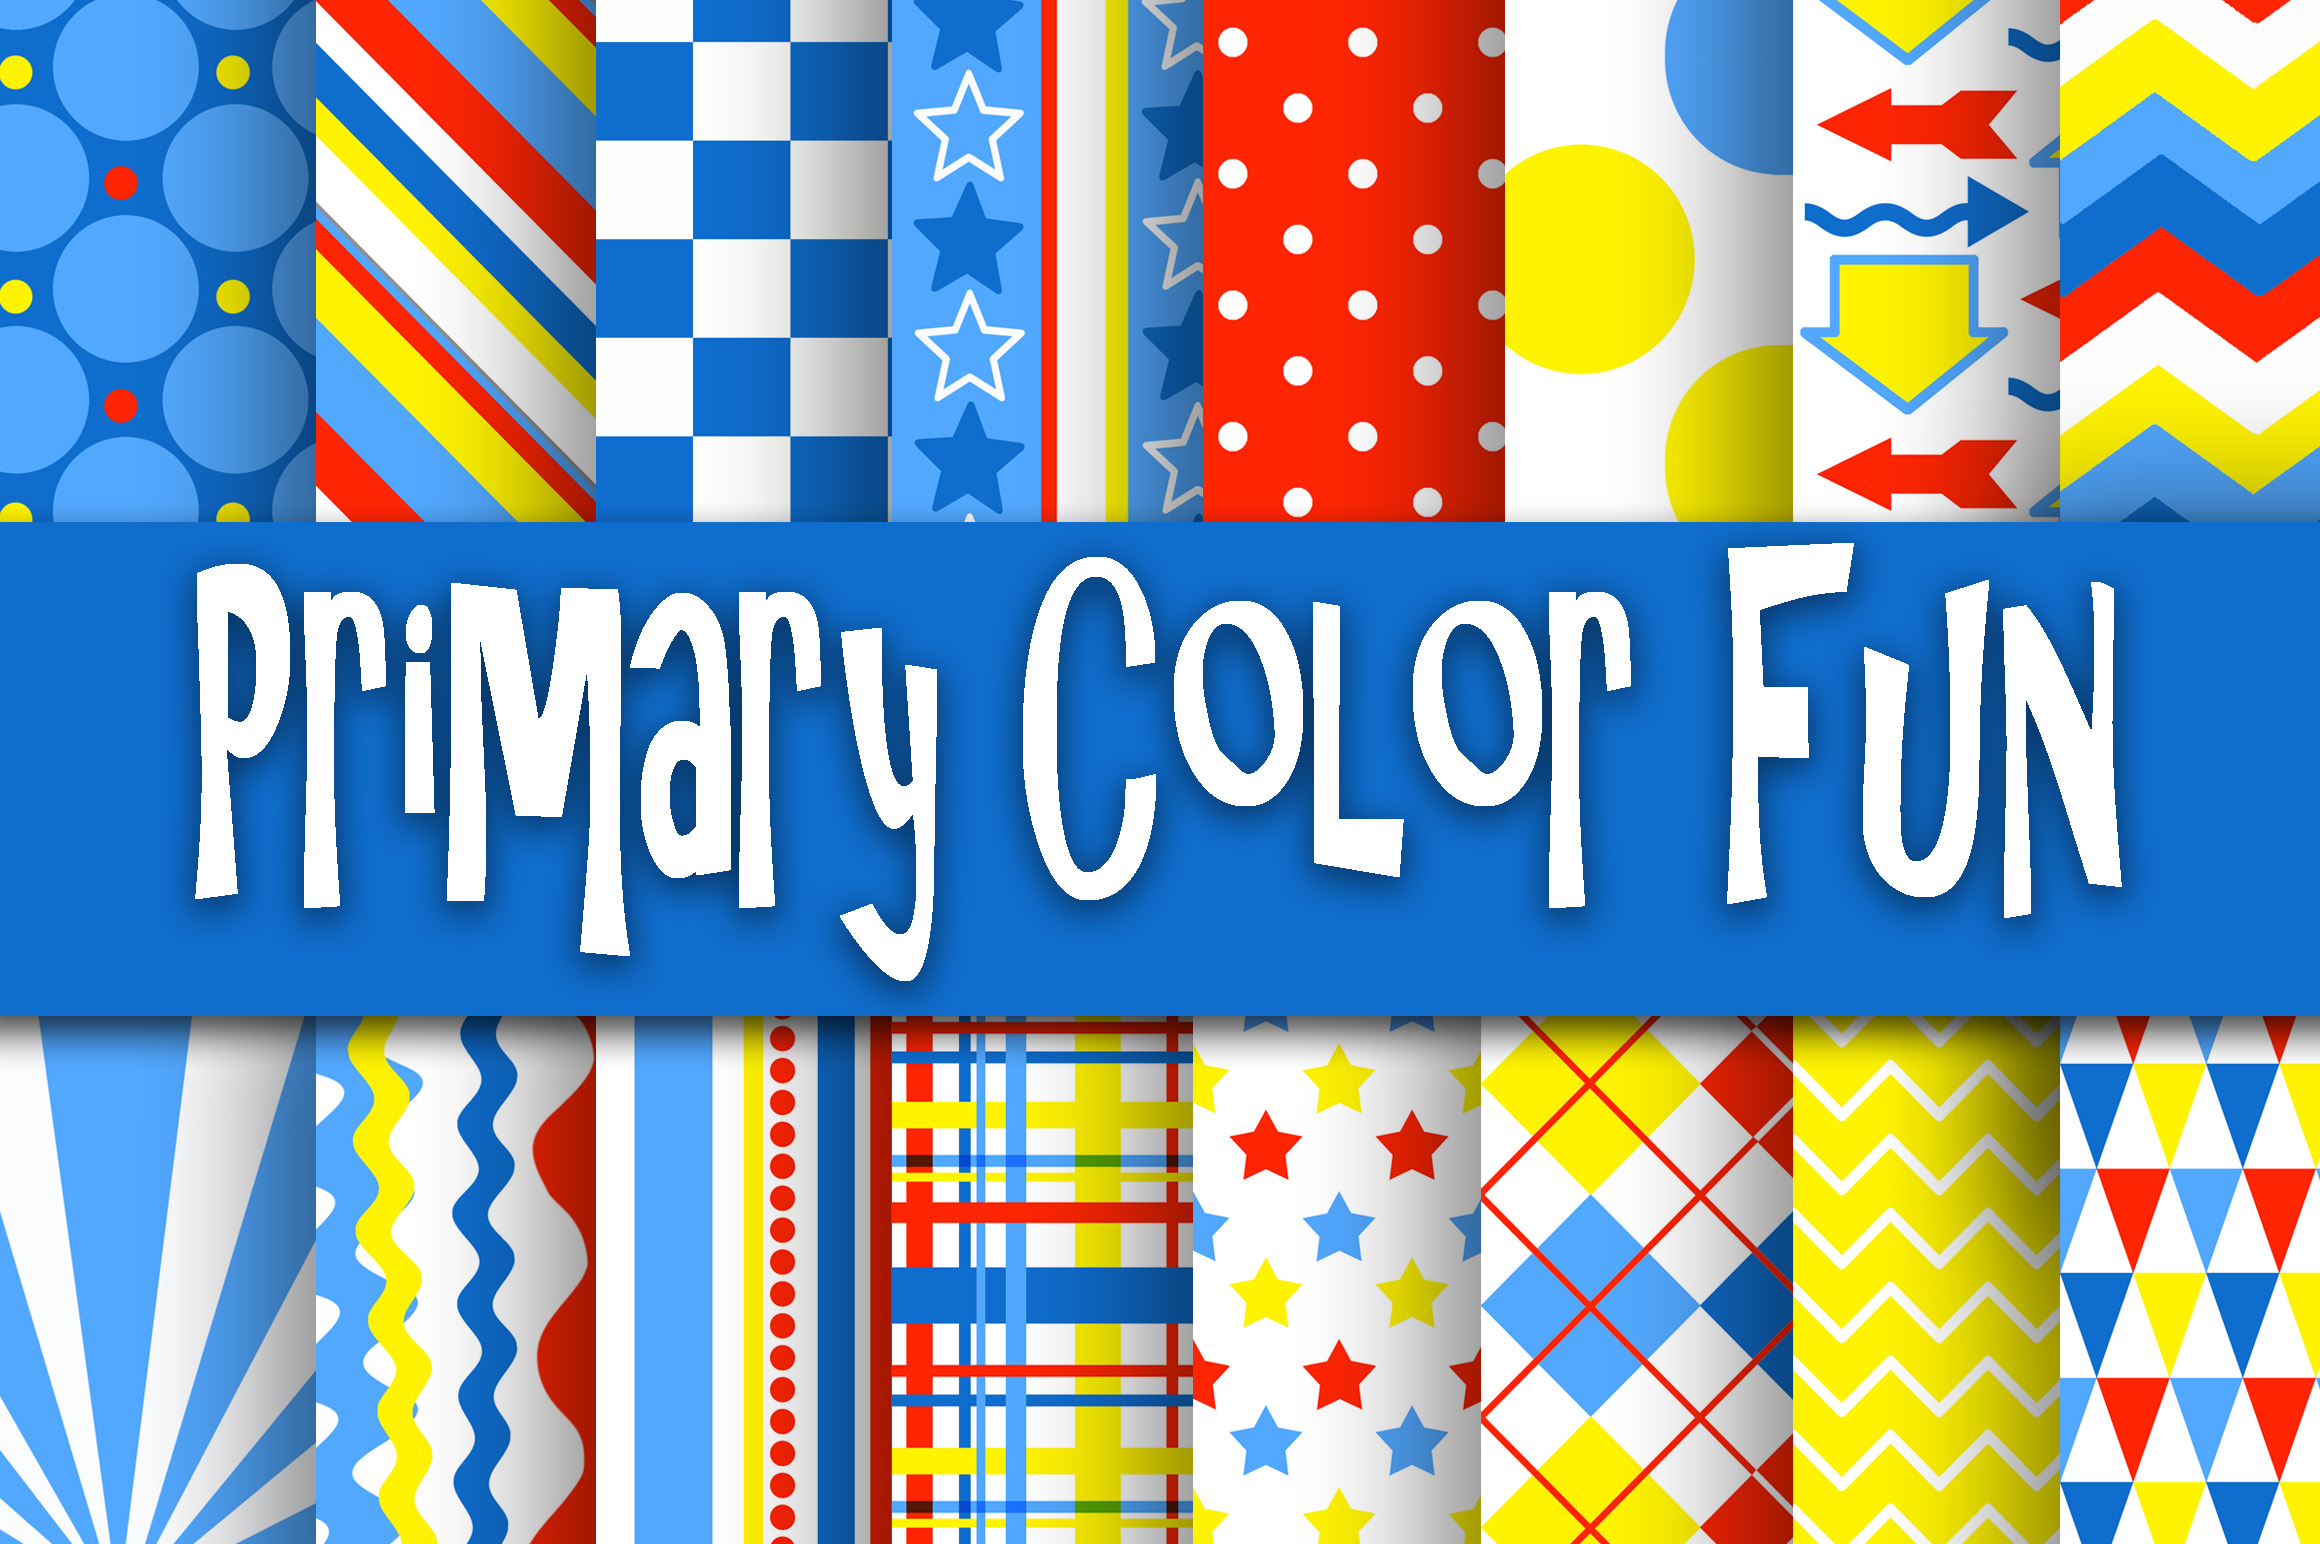 Primary Color Fun Digital Papers Graphic By Oldmarketdesigns